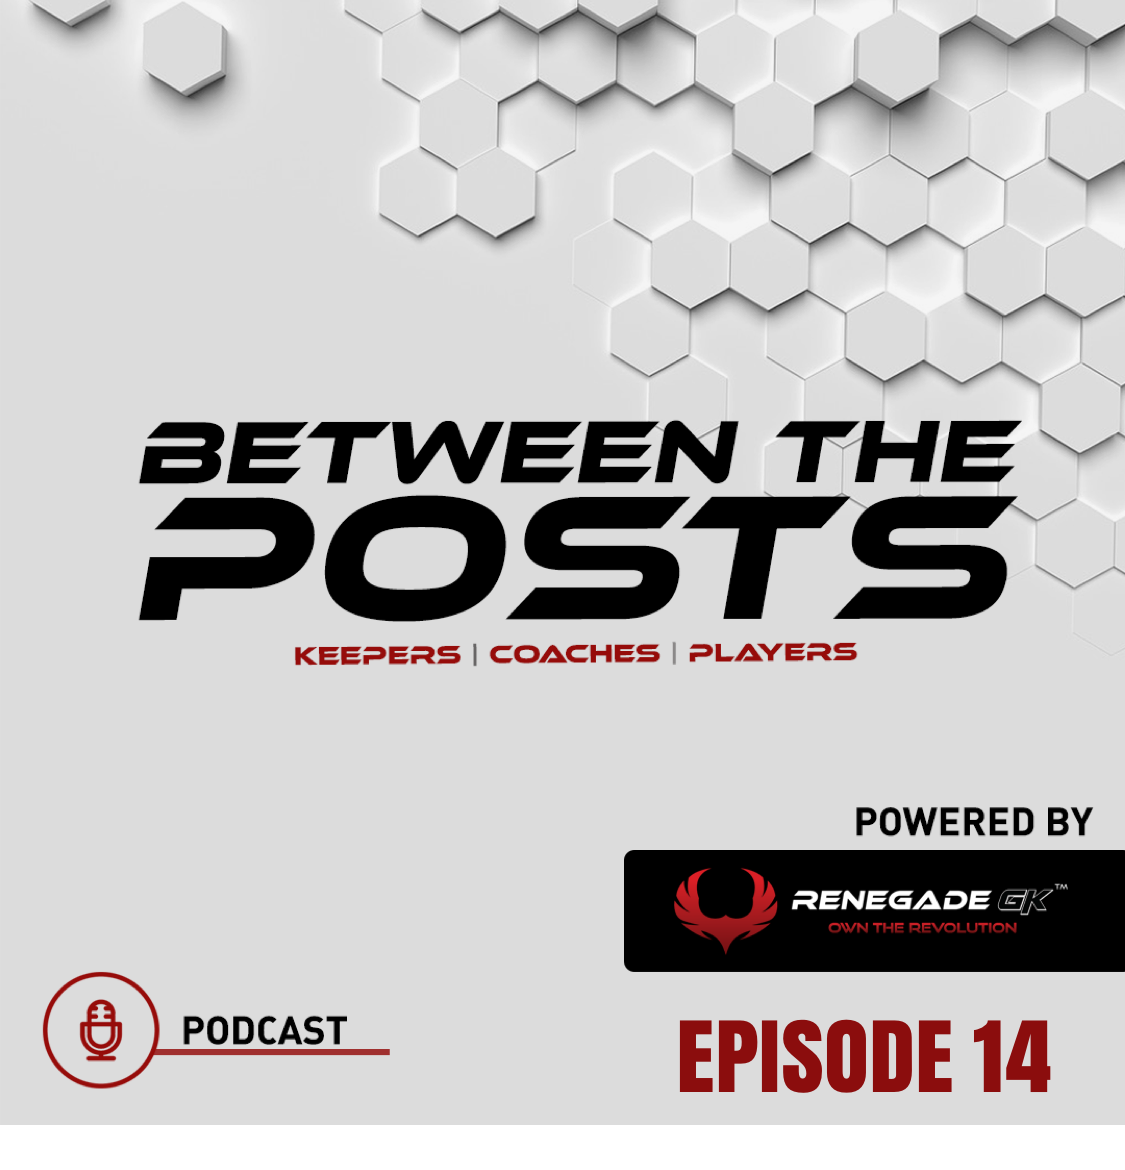 Between The Posts Ep. 14: So, You Want To Play College Soccer? |Part 2 of 2|